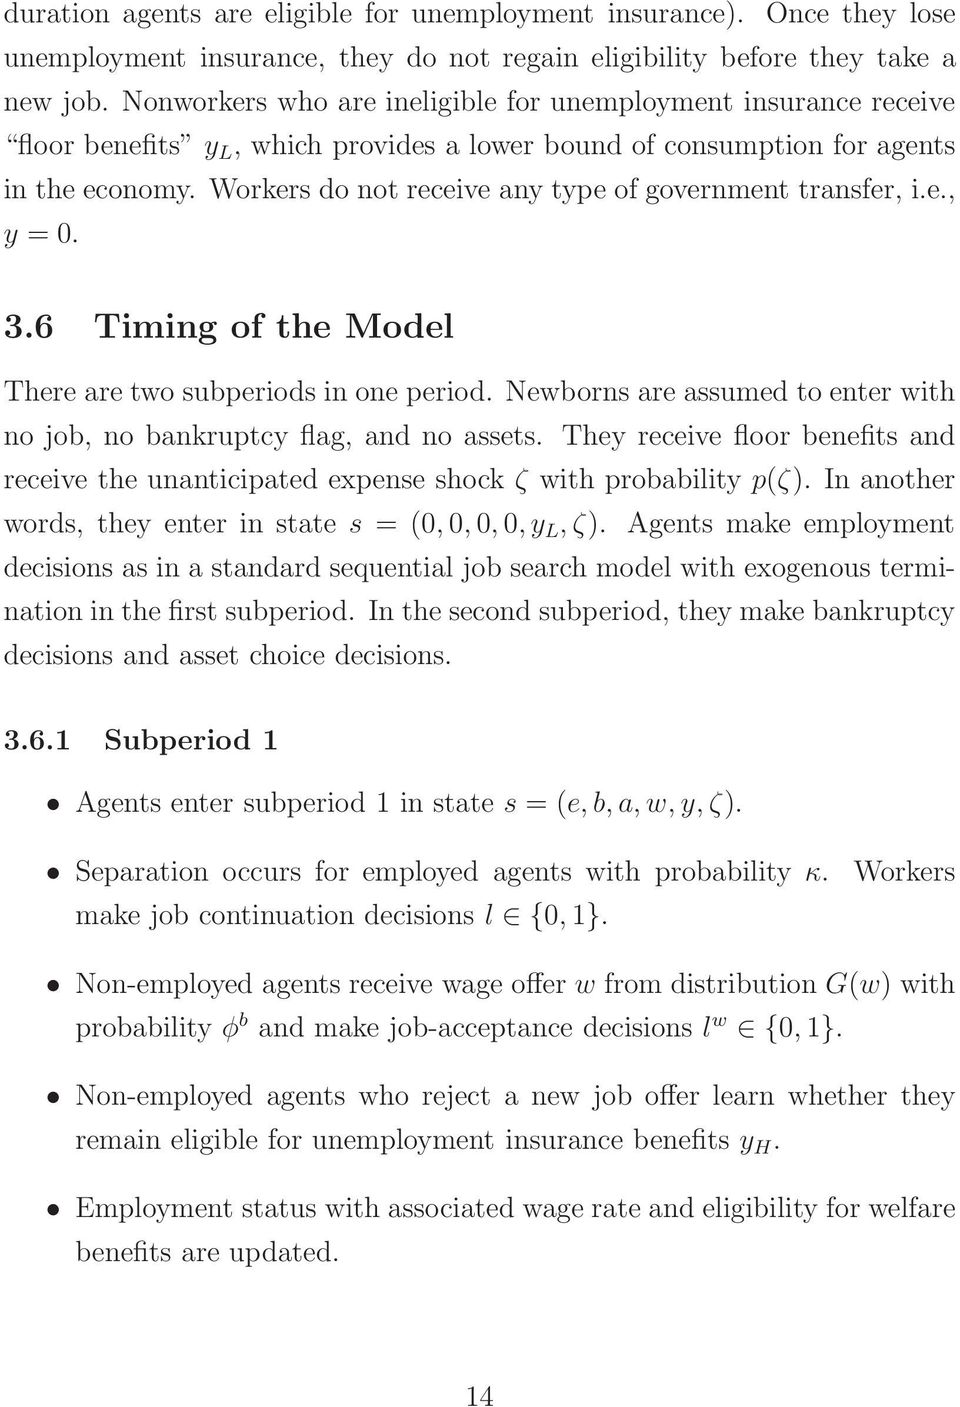 Workers do not receive any type of government transfer, i.e., y = 0. 3.6 Timing of the Model There are two subperiods in one period.